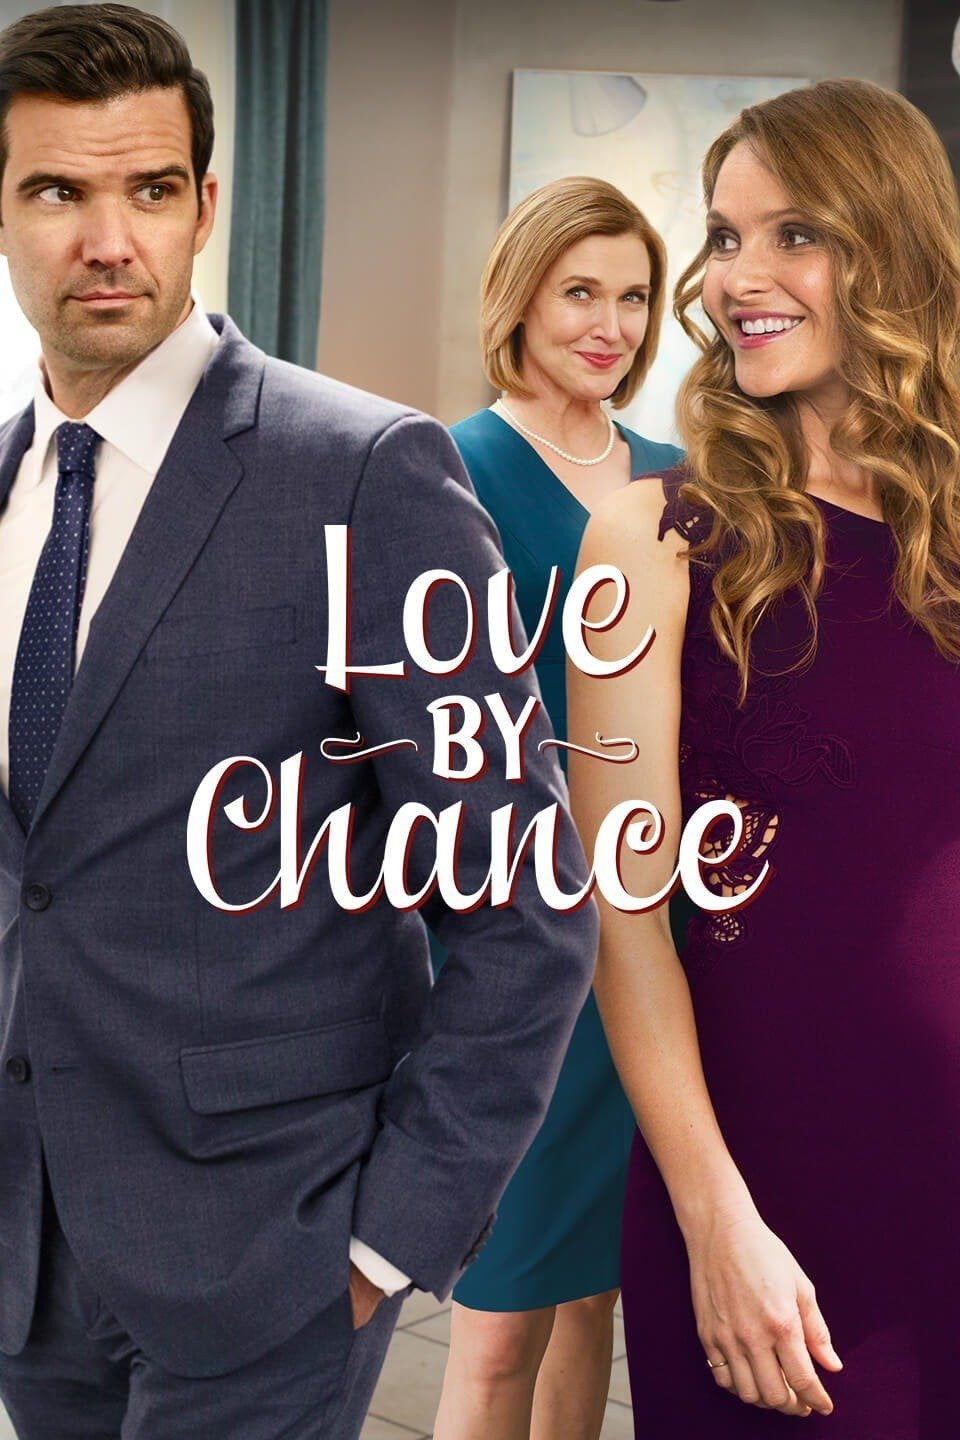 Love by Chance Dvd (2016)